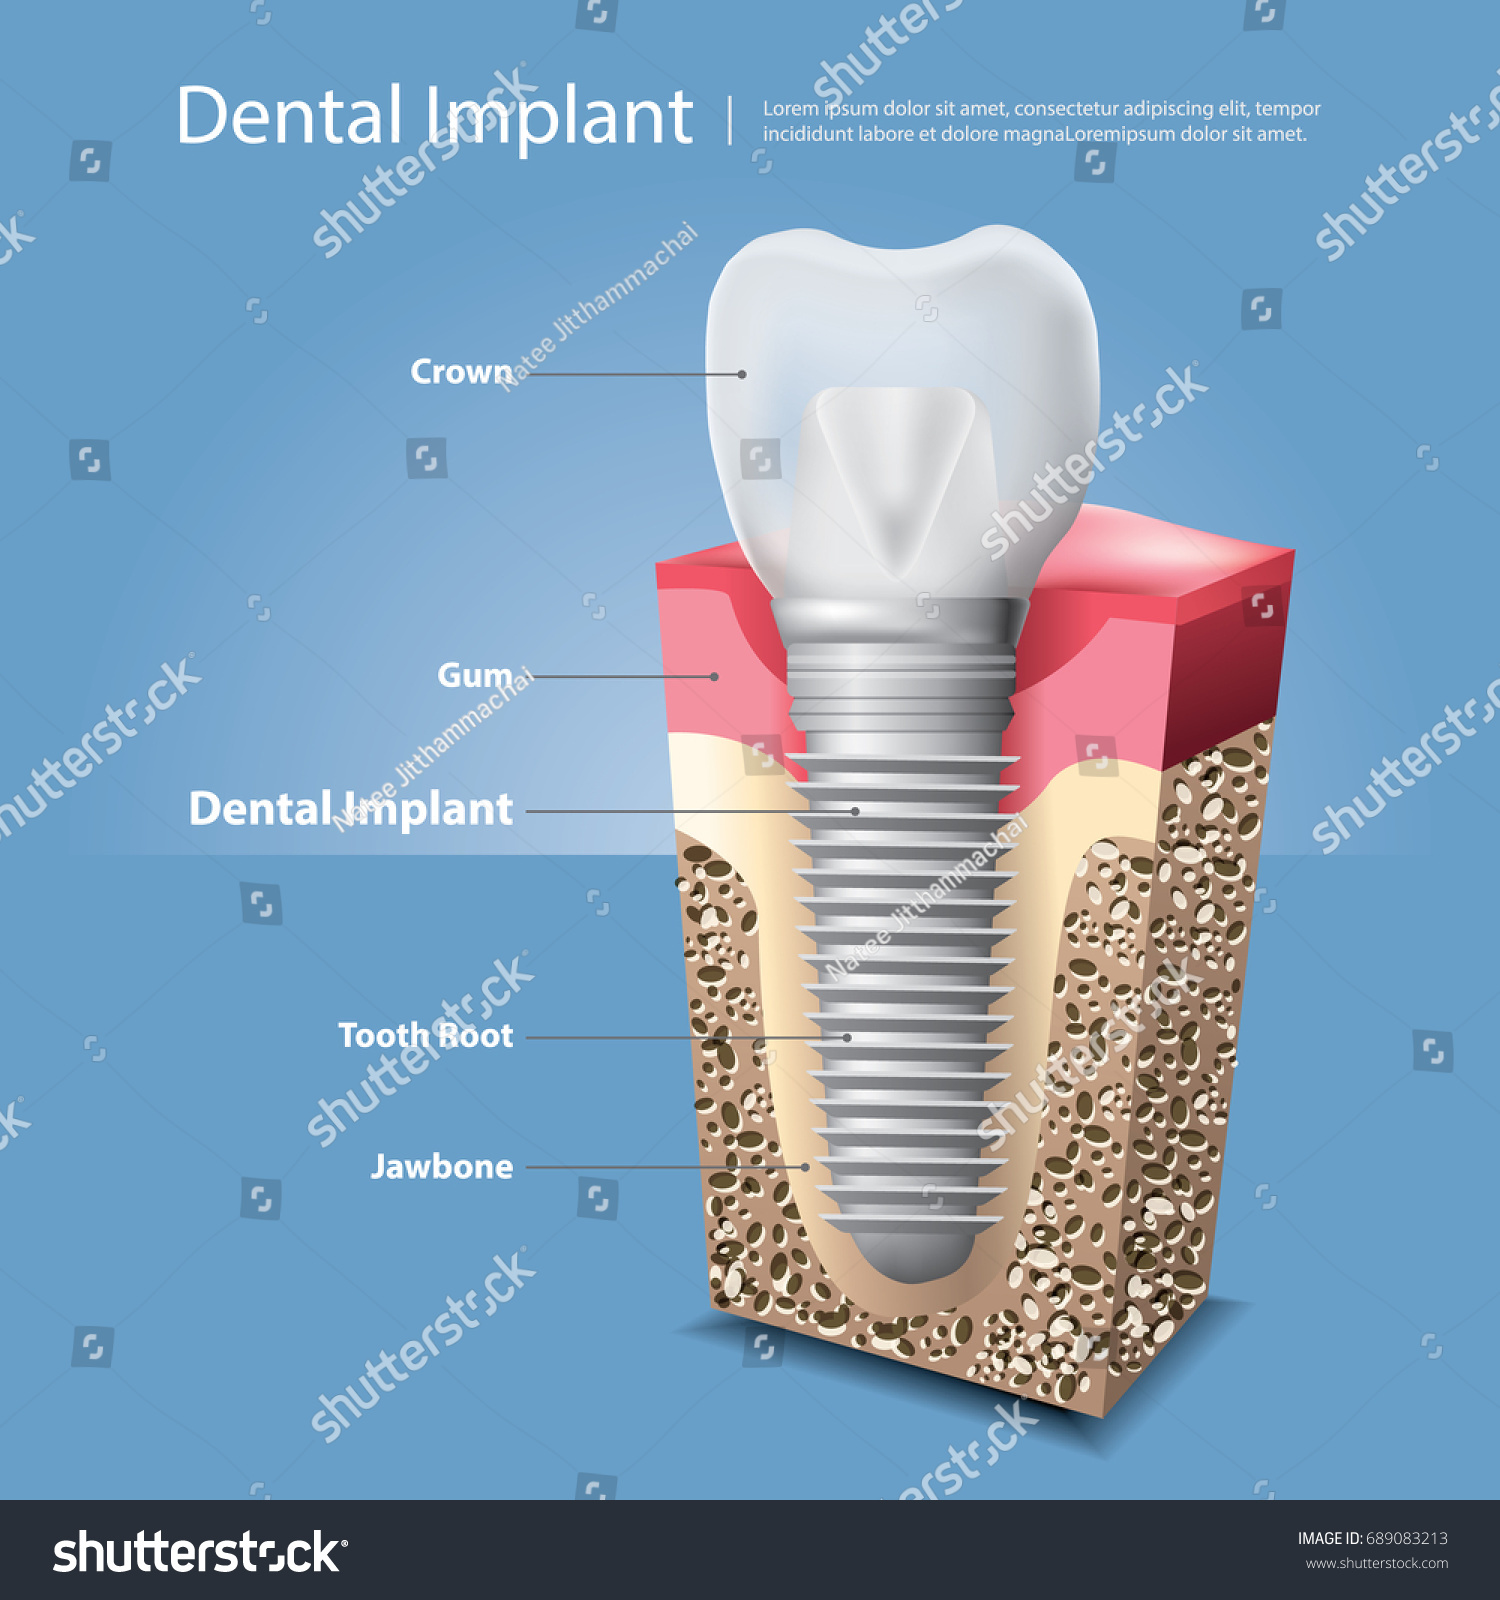 Human teeth dental implant vector illustration stock vector human teeth and dental implant vector illustration biocorpaavc Image collections